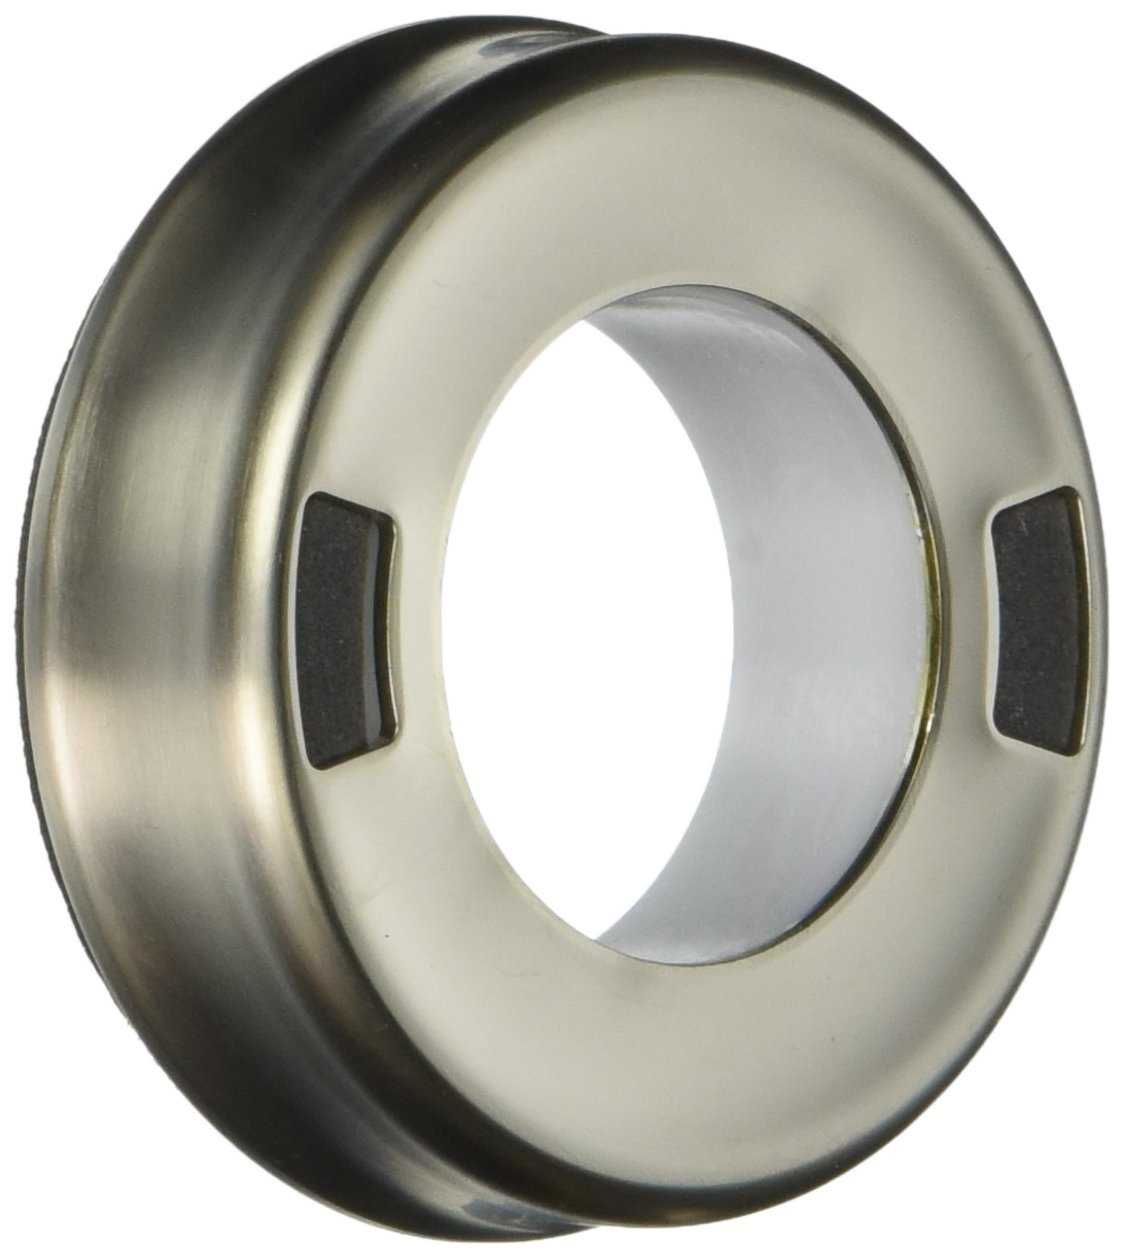 Moen 100151SL Colonnade and Salora Single Mount Escutcheon and Gasket Kit, Stainless Steel